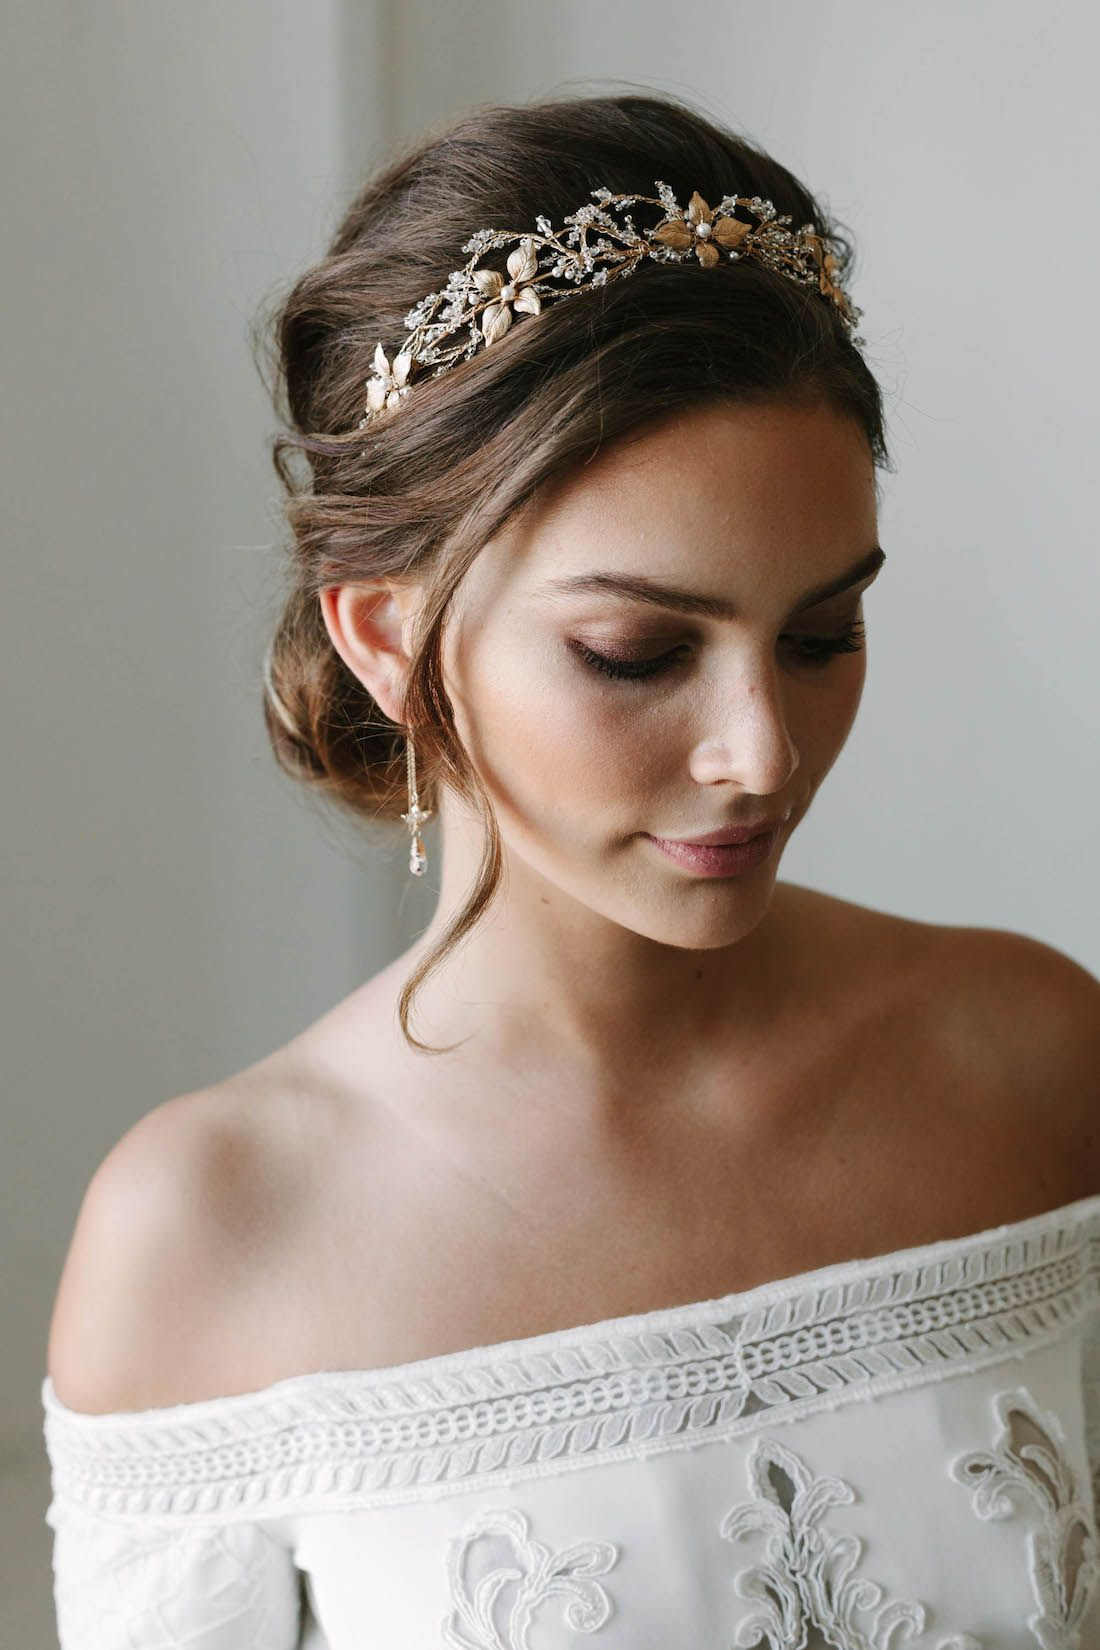 rosebury crystal wedding crown | tania maras | hair styling